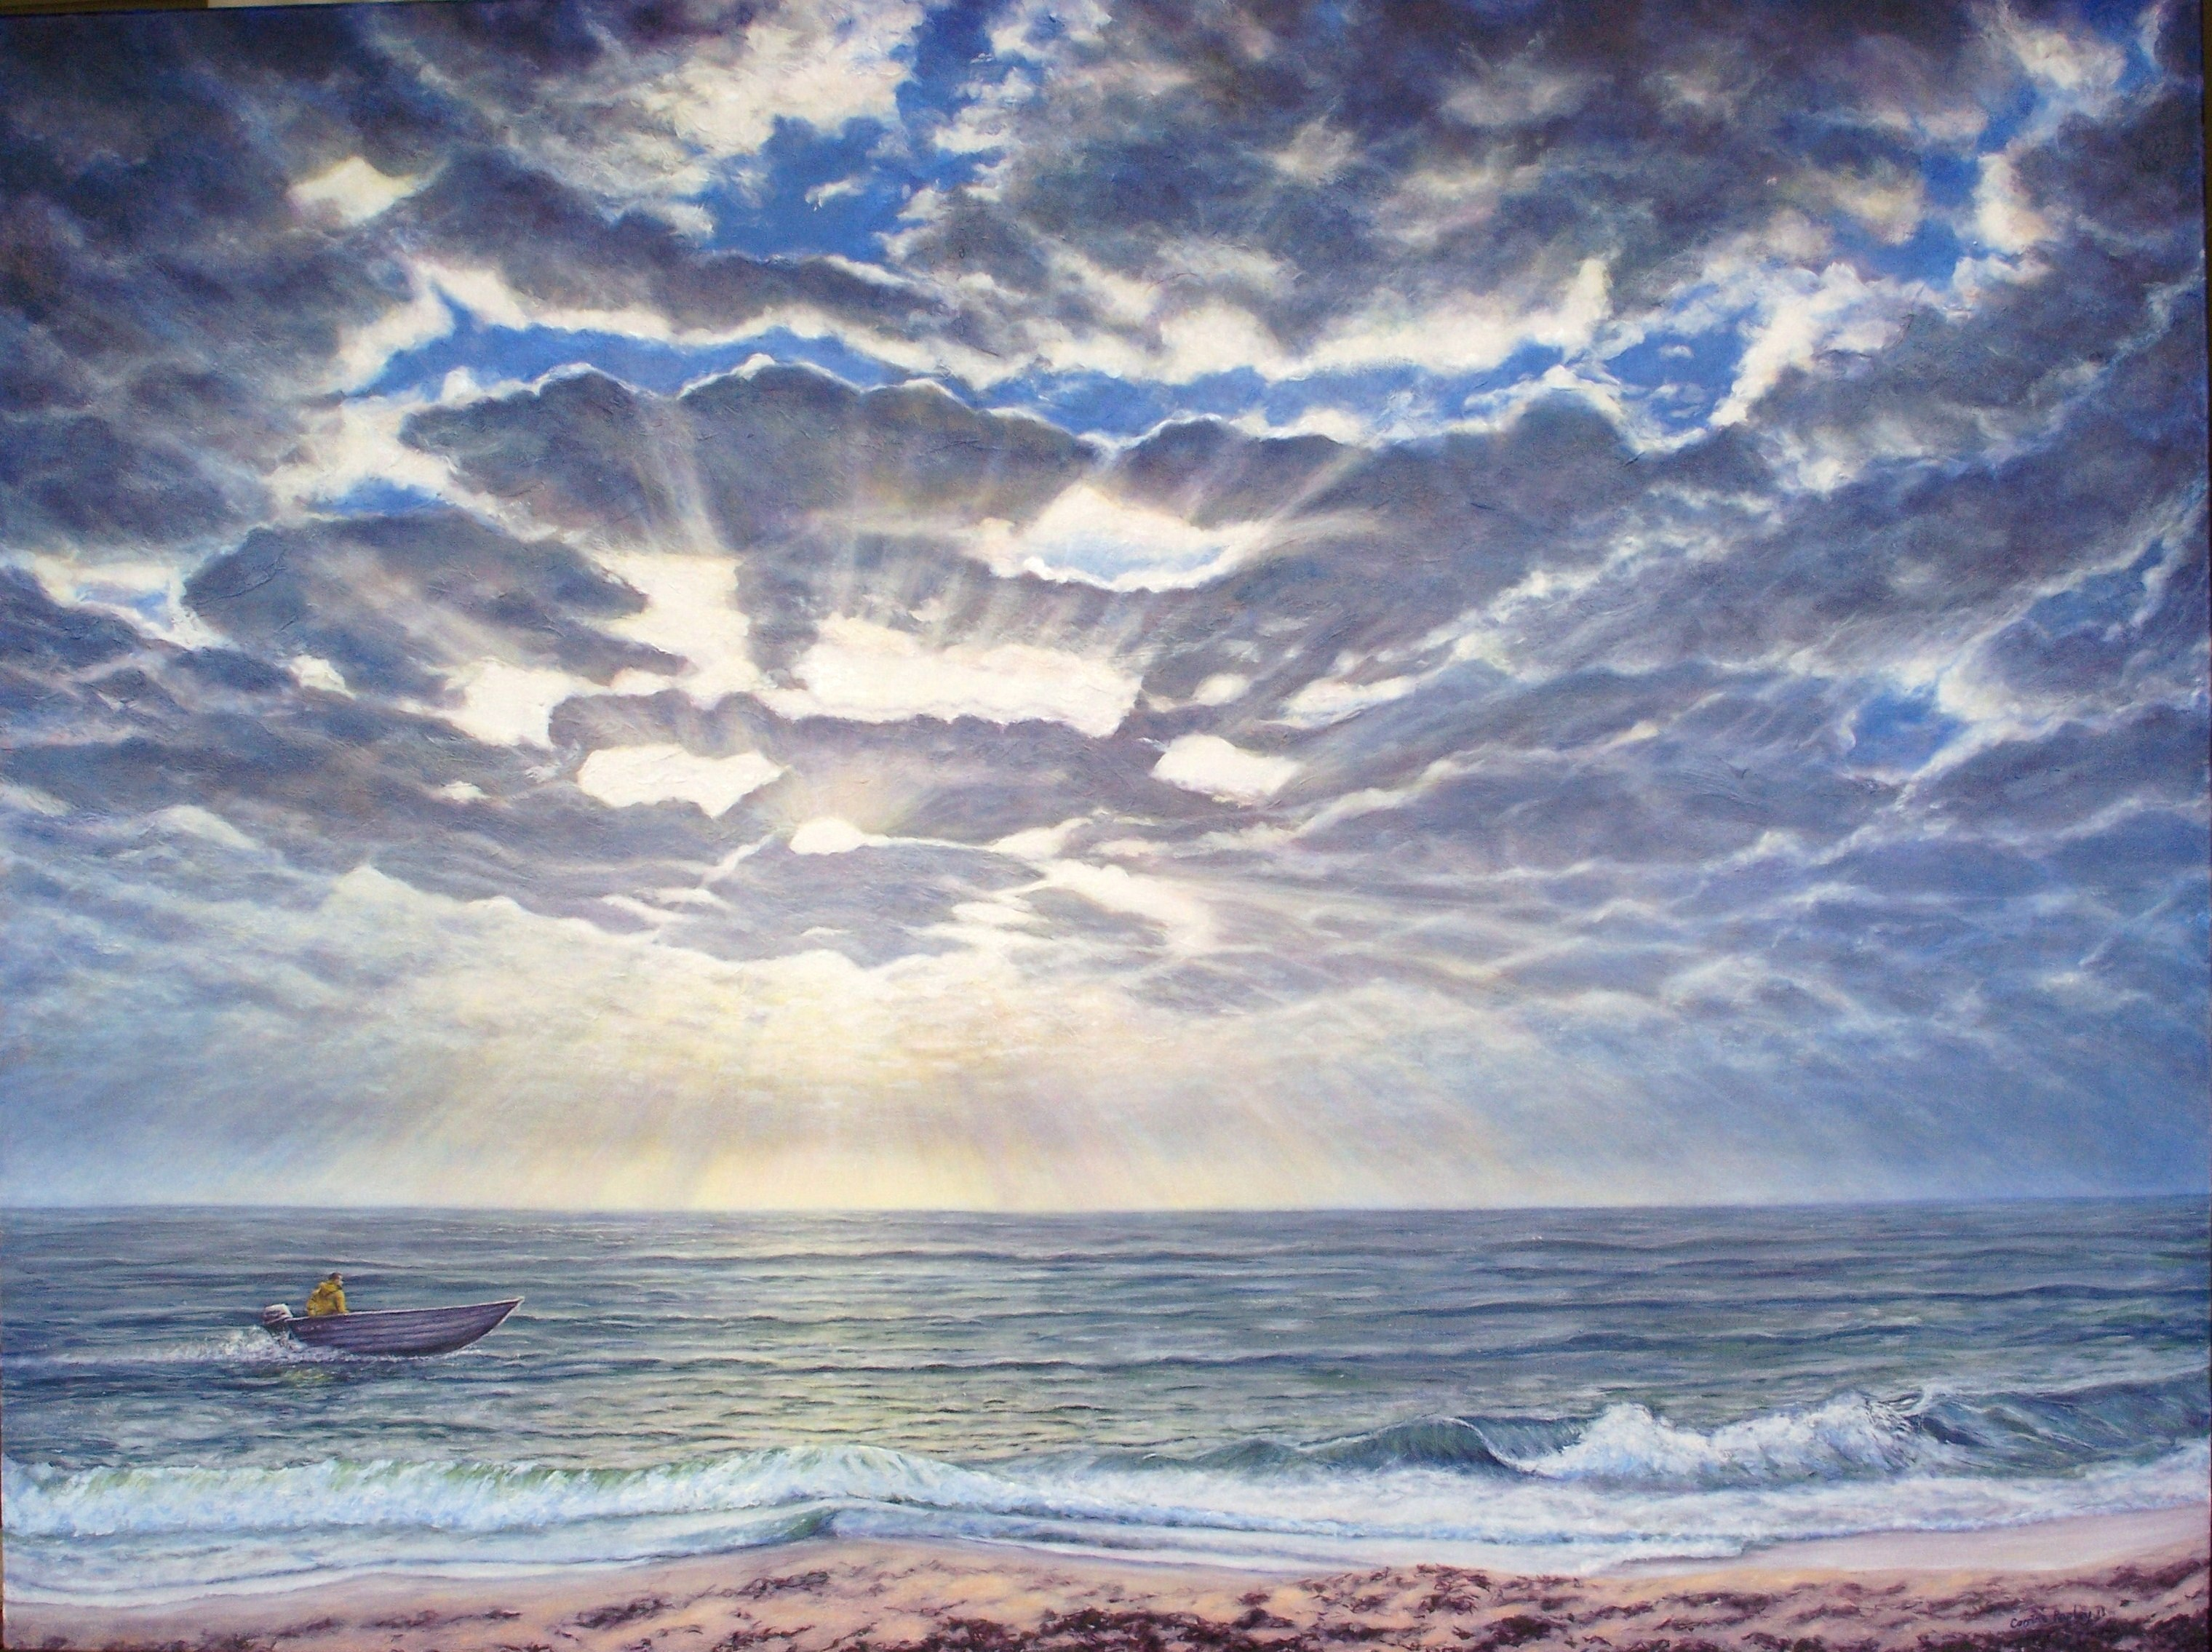 Homeward Bound, Florida Beach - SOLD